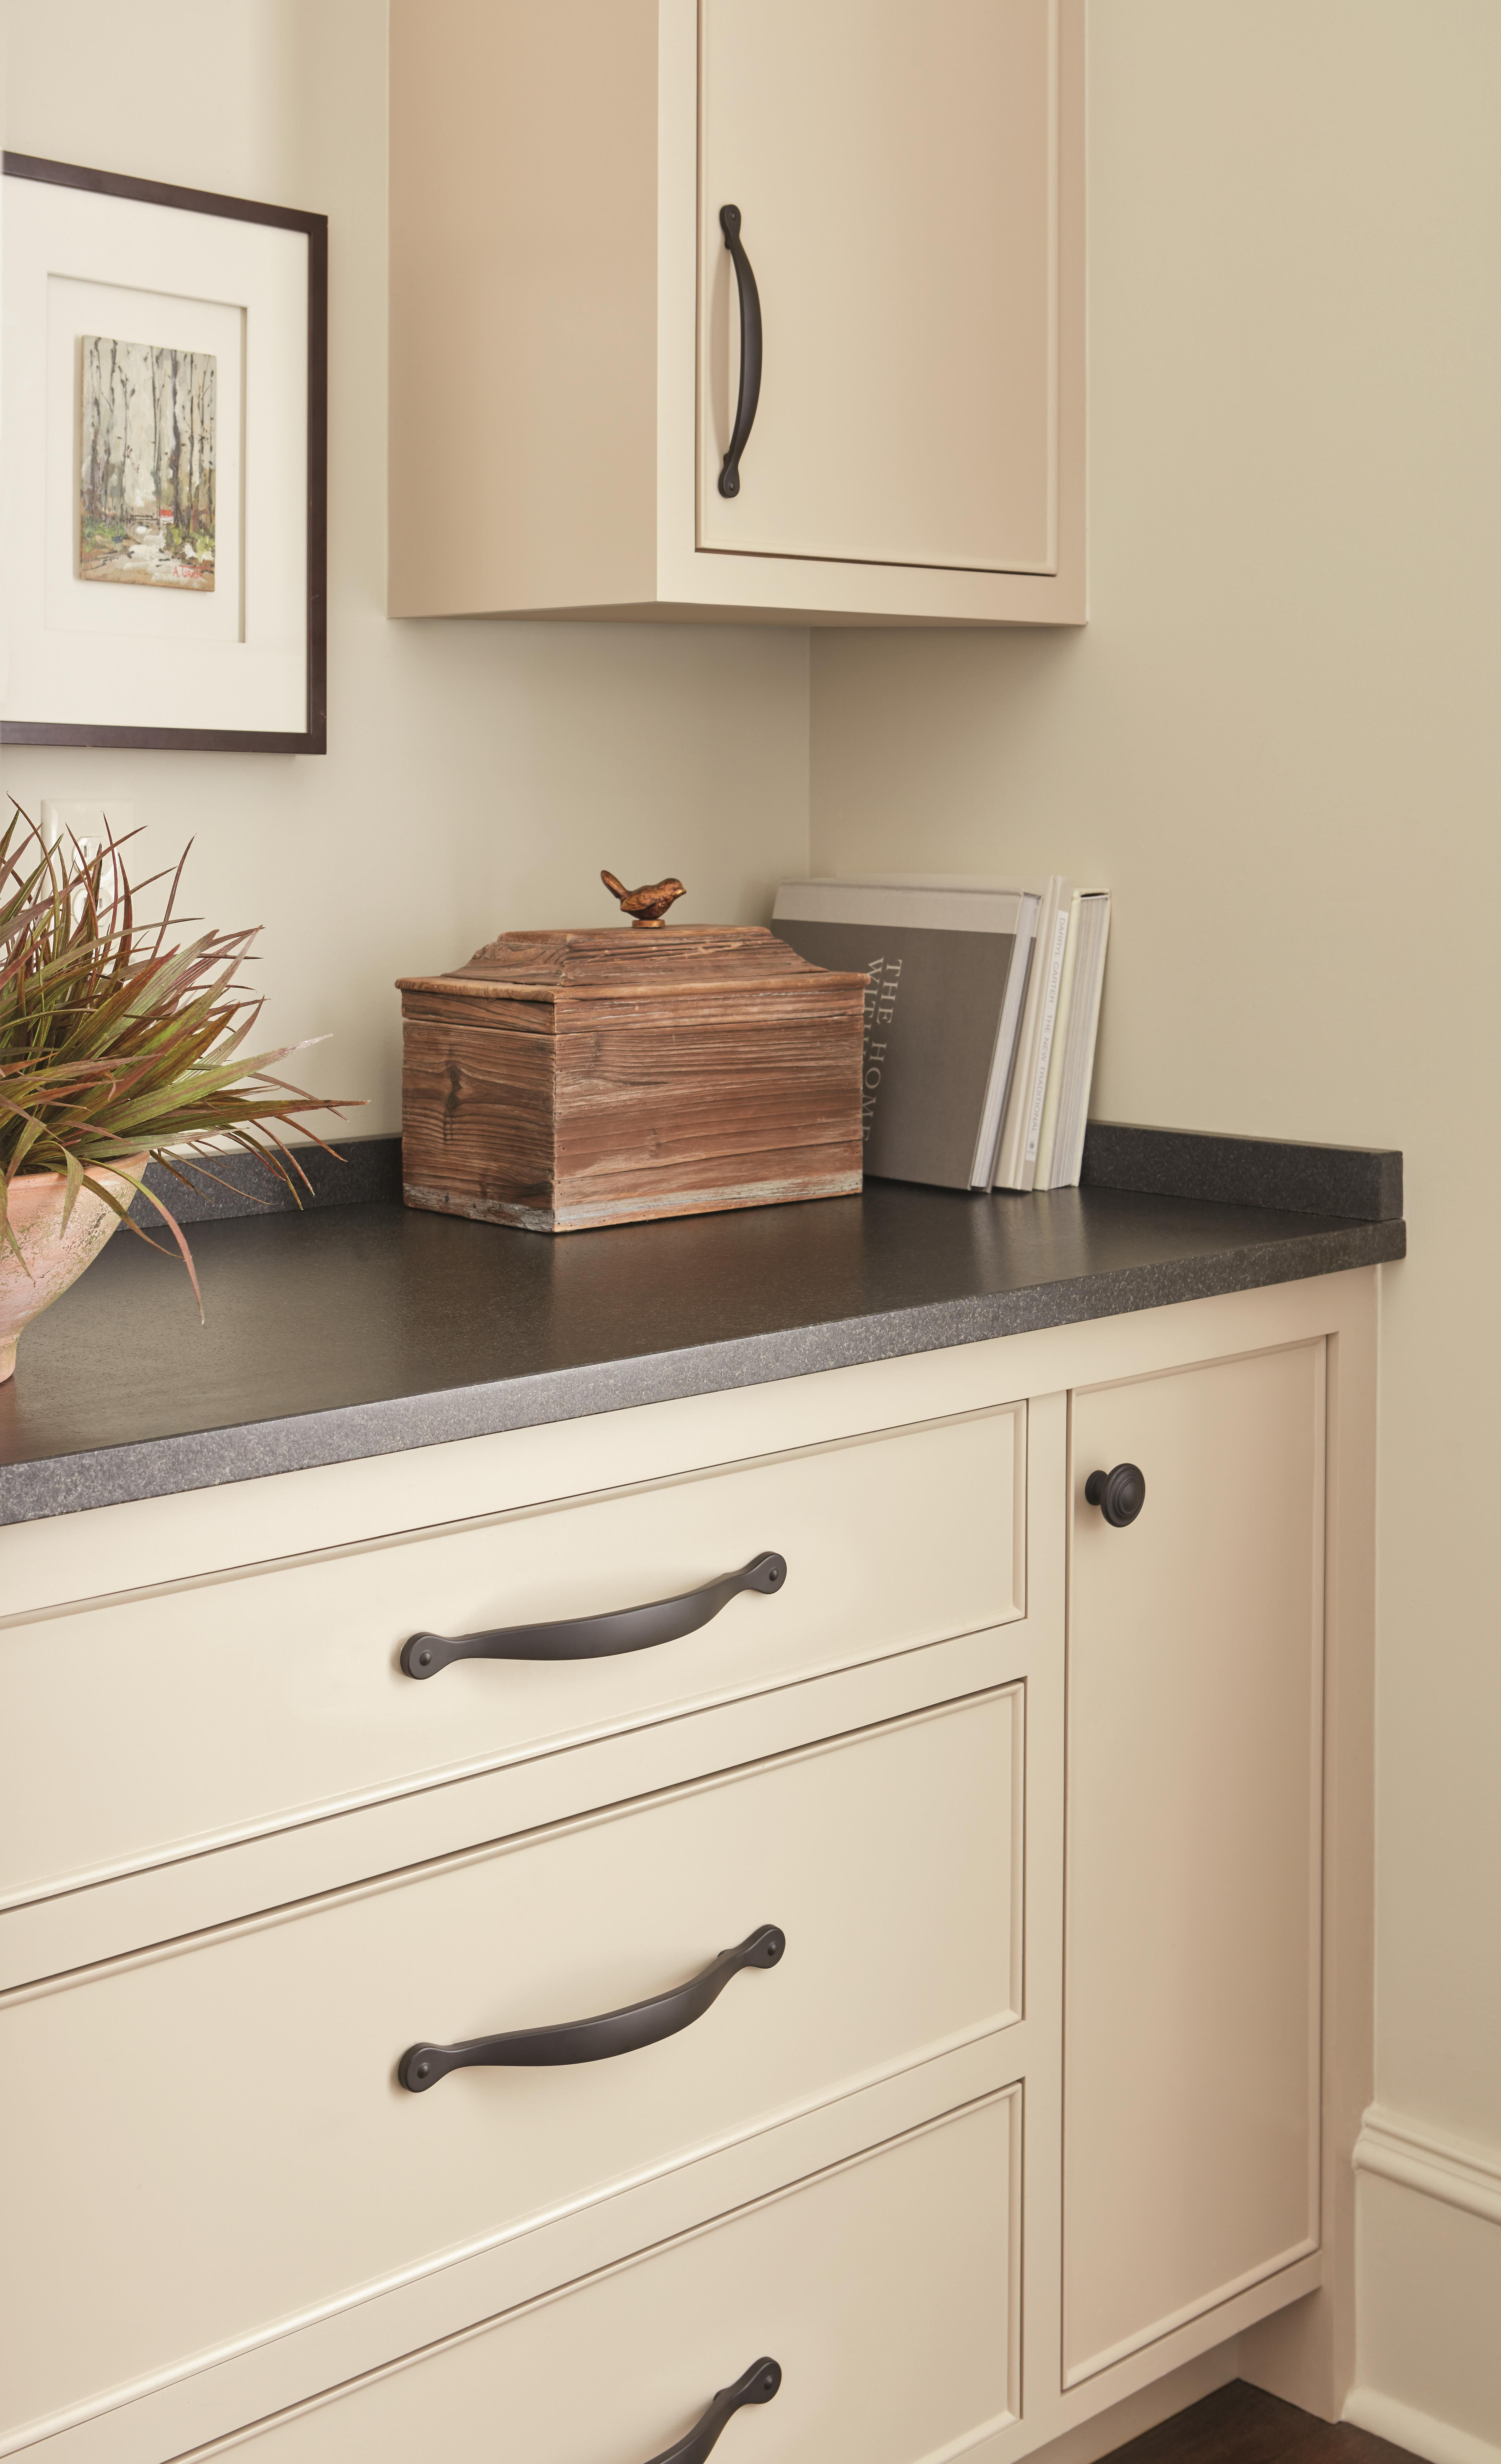 Get Inspired To Revamp Your Kitchen Cabinets With Some New